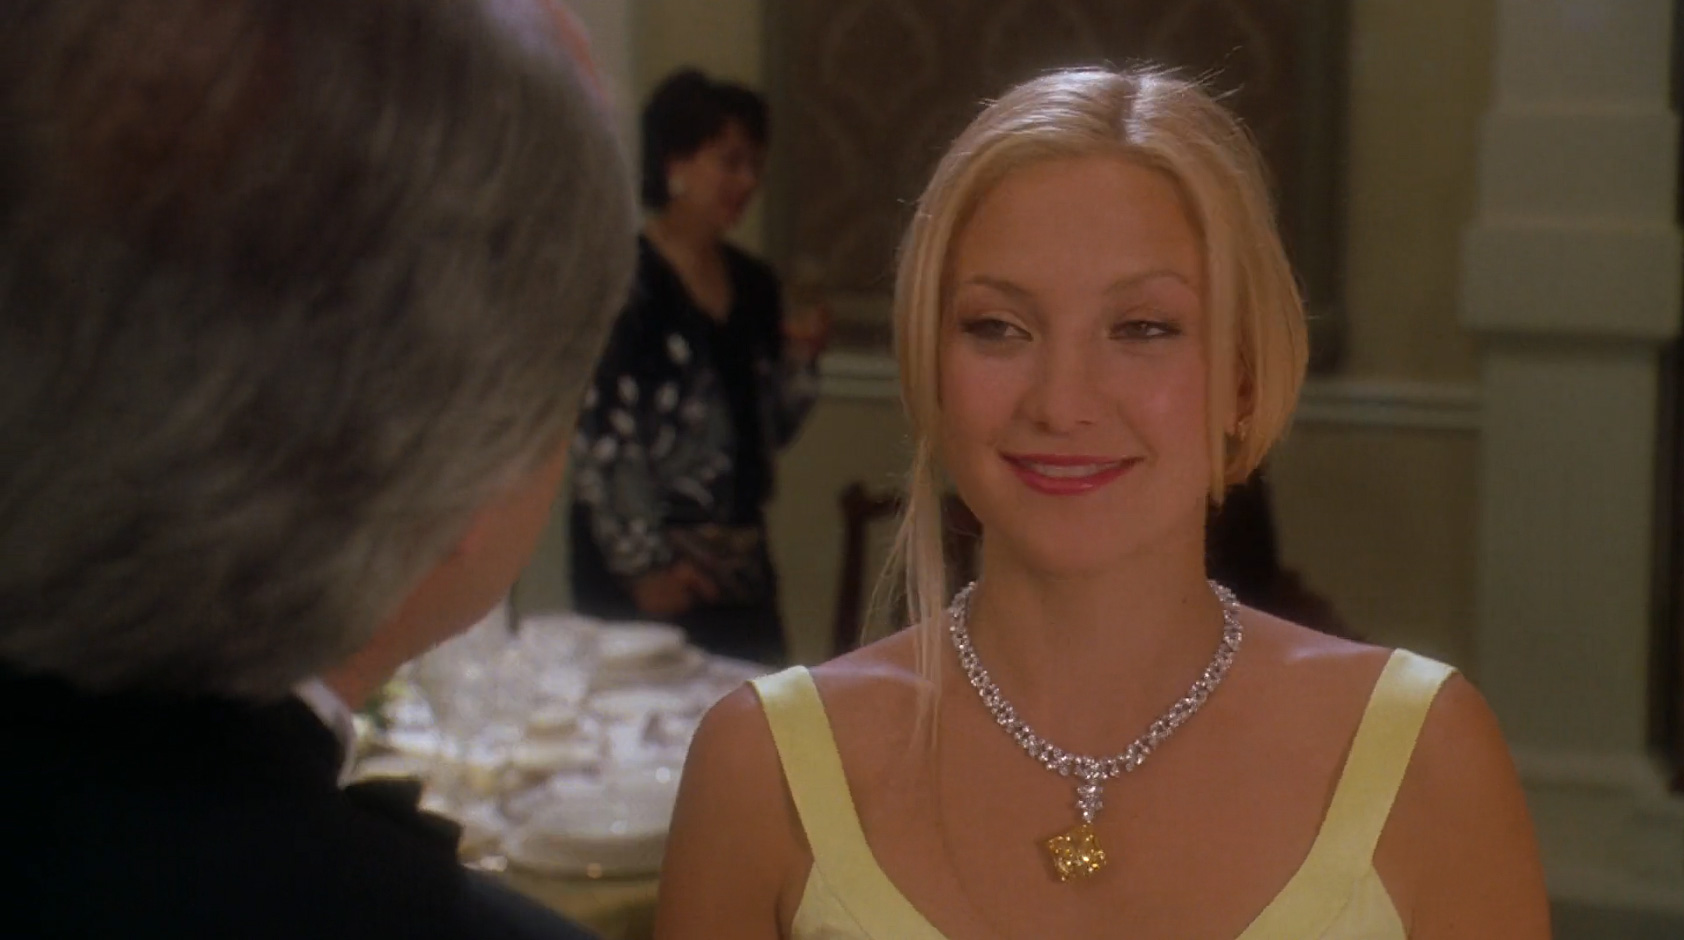 Harry Winston Necklaces On Marilyn Monroe Kate Hudson And